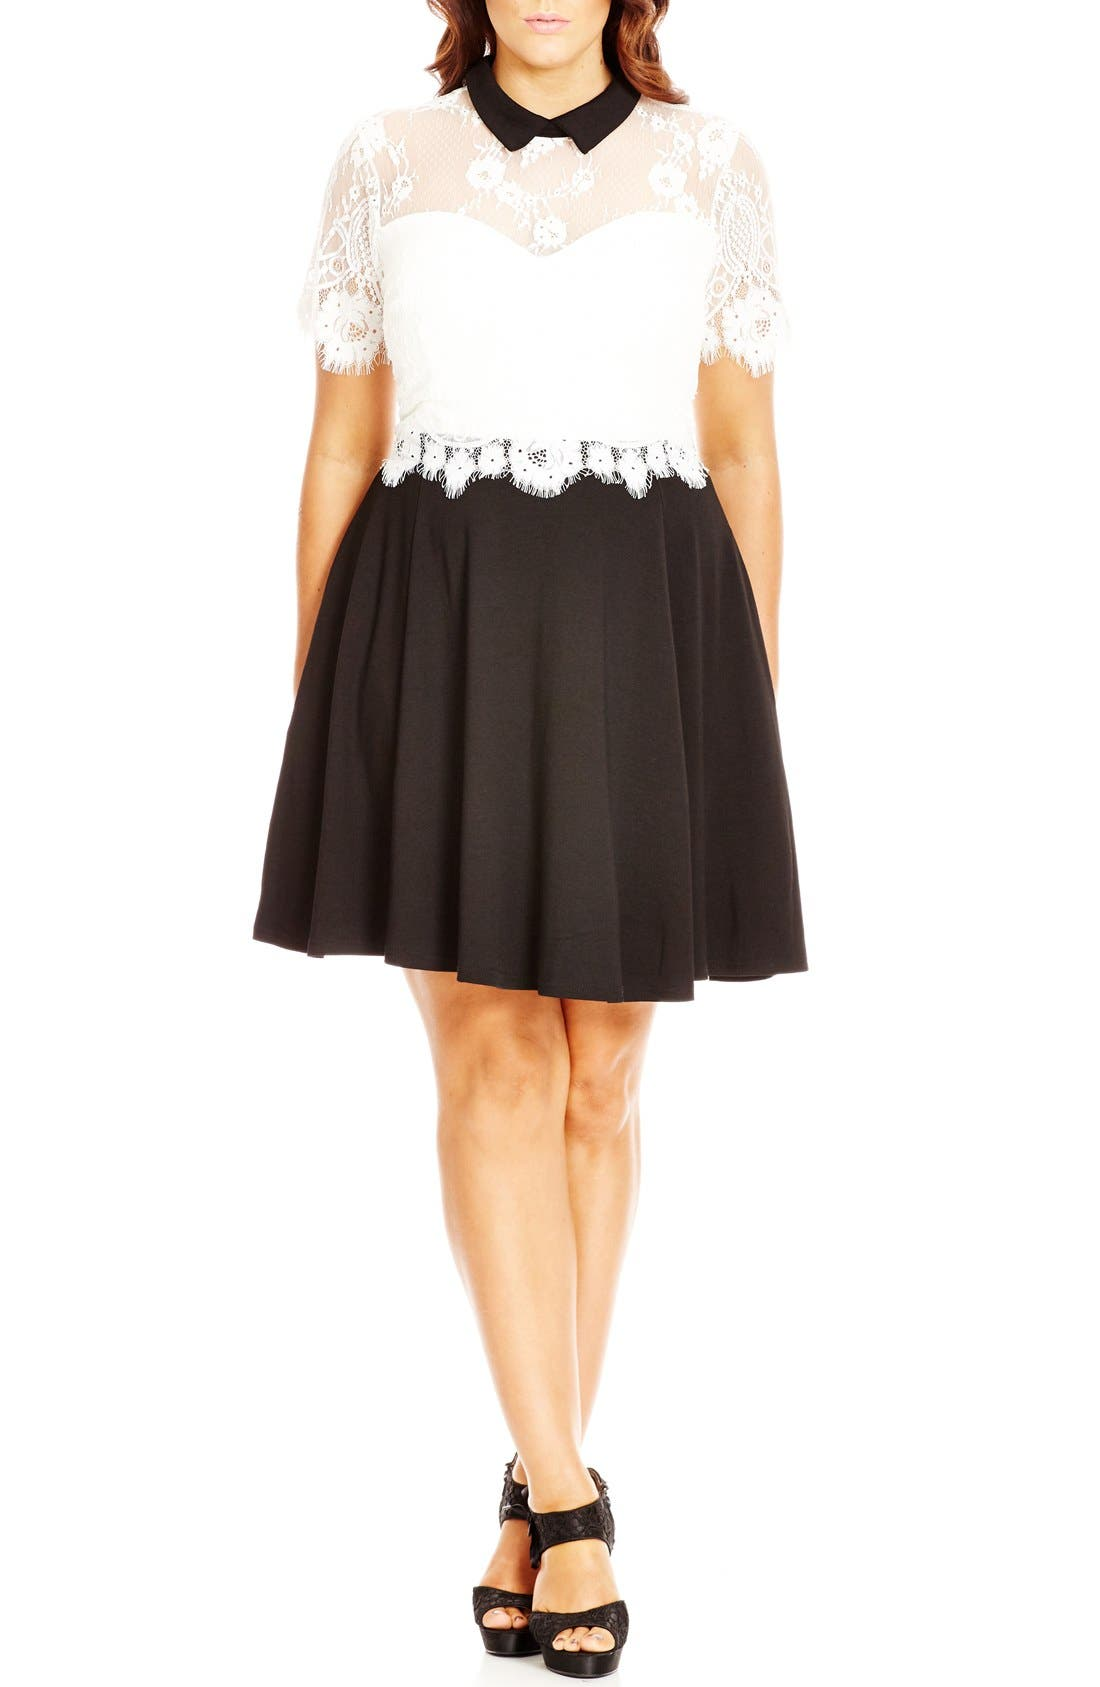 Alternate Image 1 Selected - City Chic 'Innocent Layer' Lace Bodice Mock Two-Piece Dress (Plus Size)